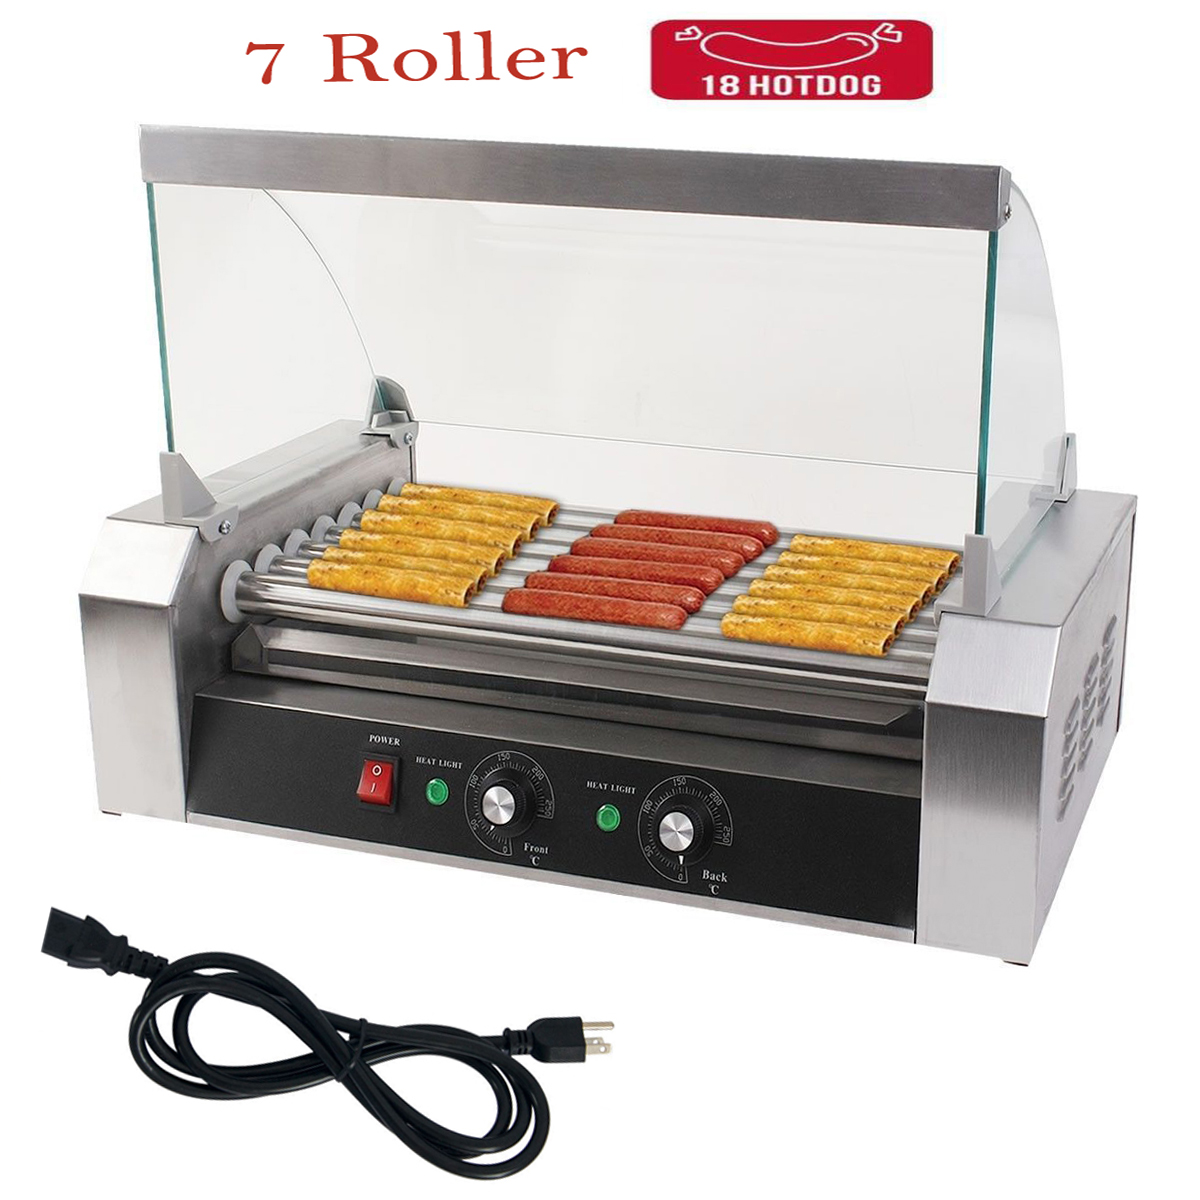 new quality commercial 18 hot dog 7 roller hotdog grill cooker machine w cover ebay. Black Bedroom Furniture Sets. Home Design Ideas